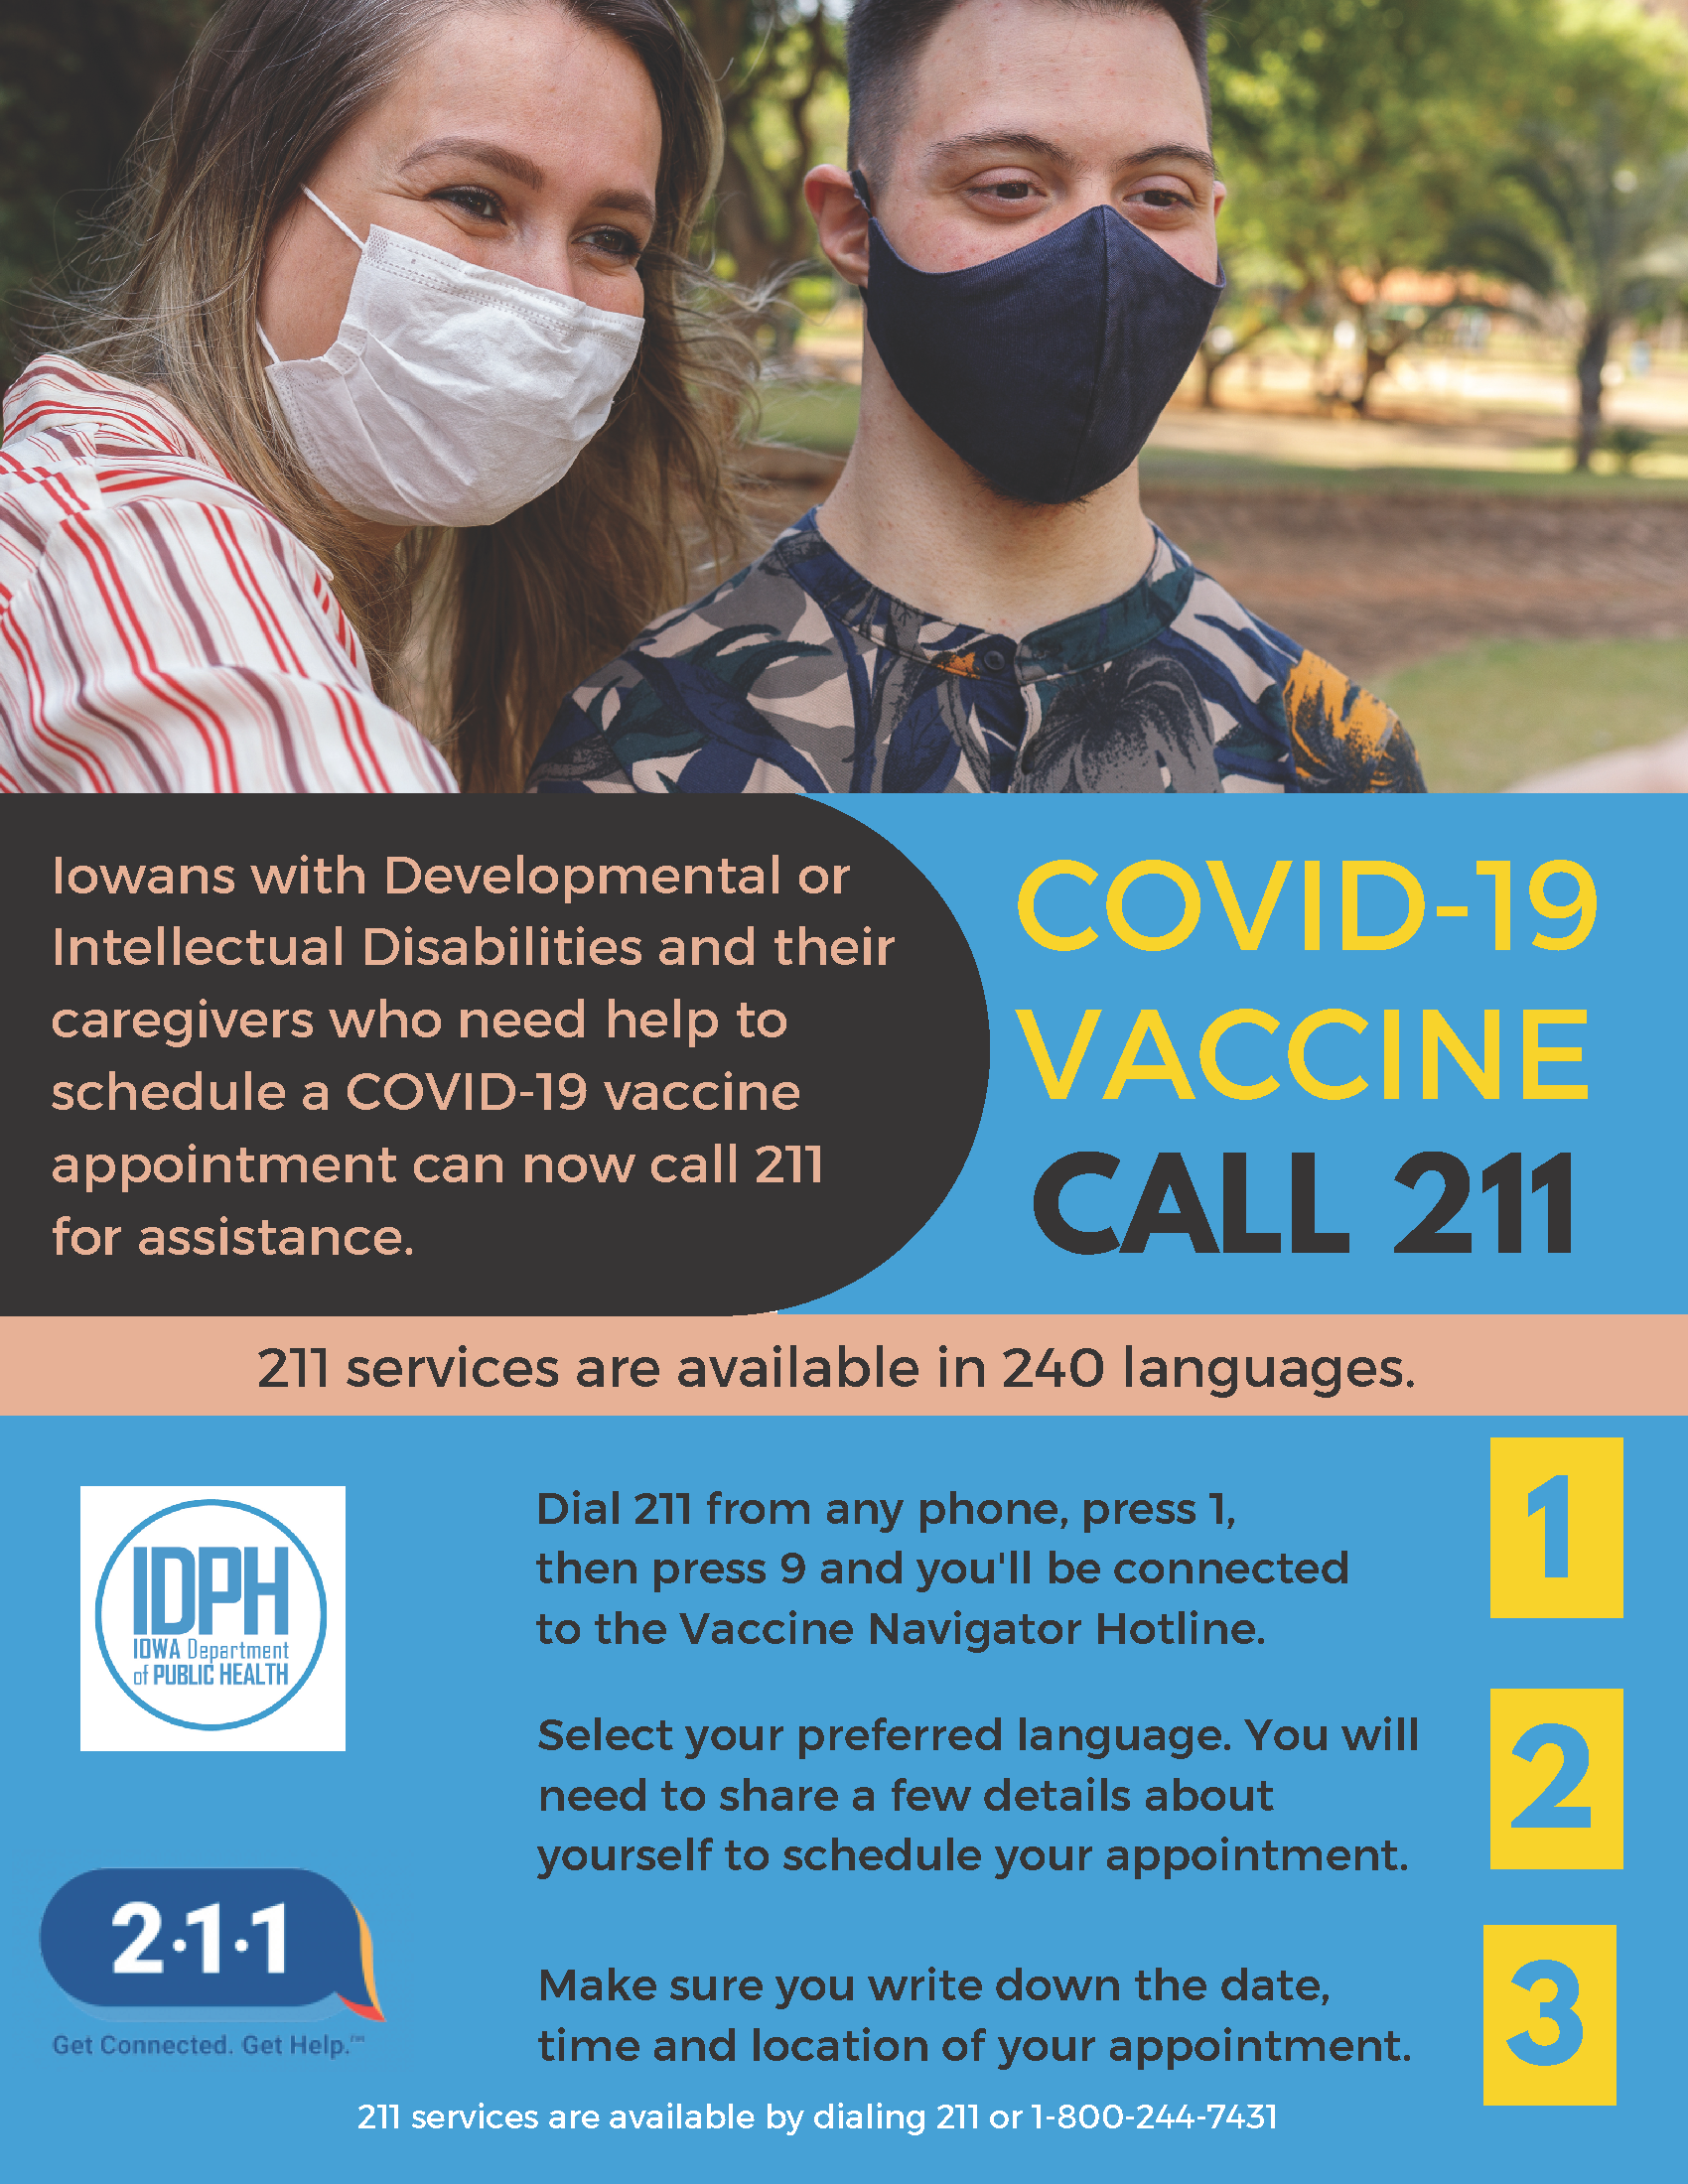 211 COVID-19 Vaccine Appointment Assistance